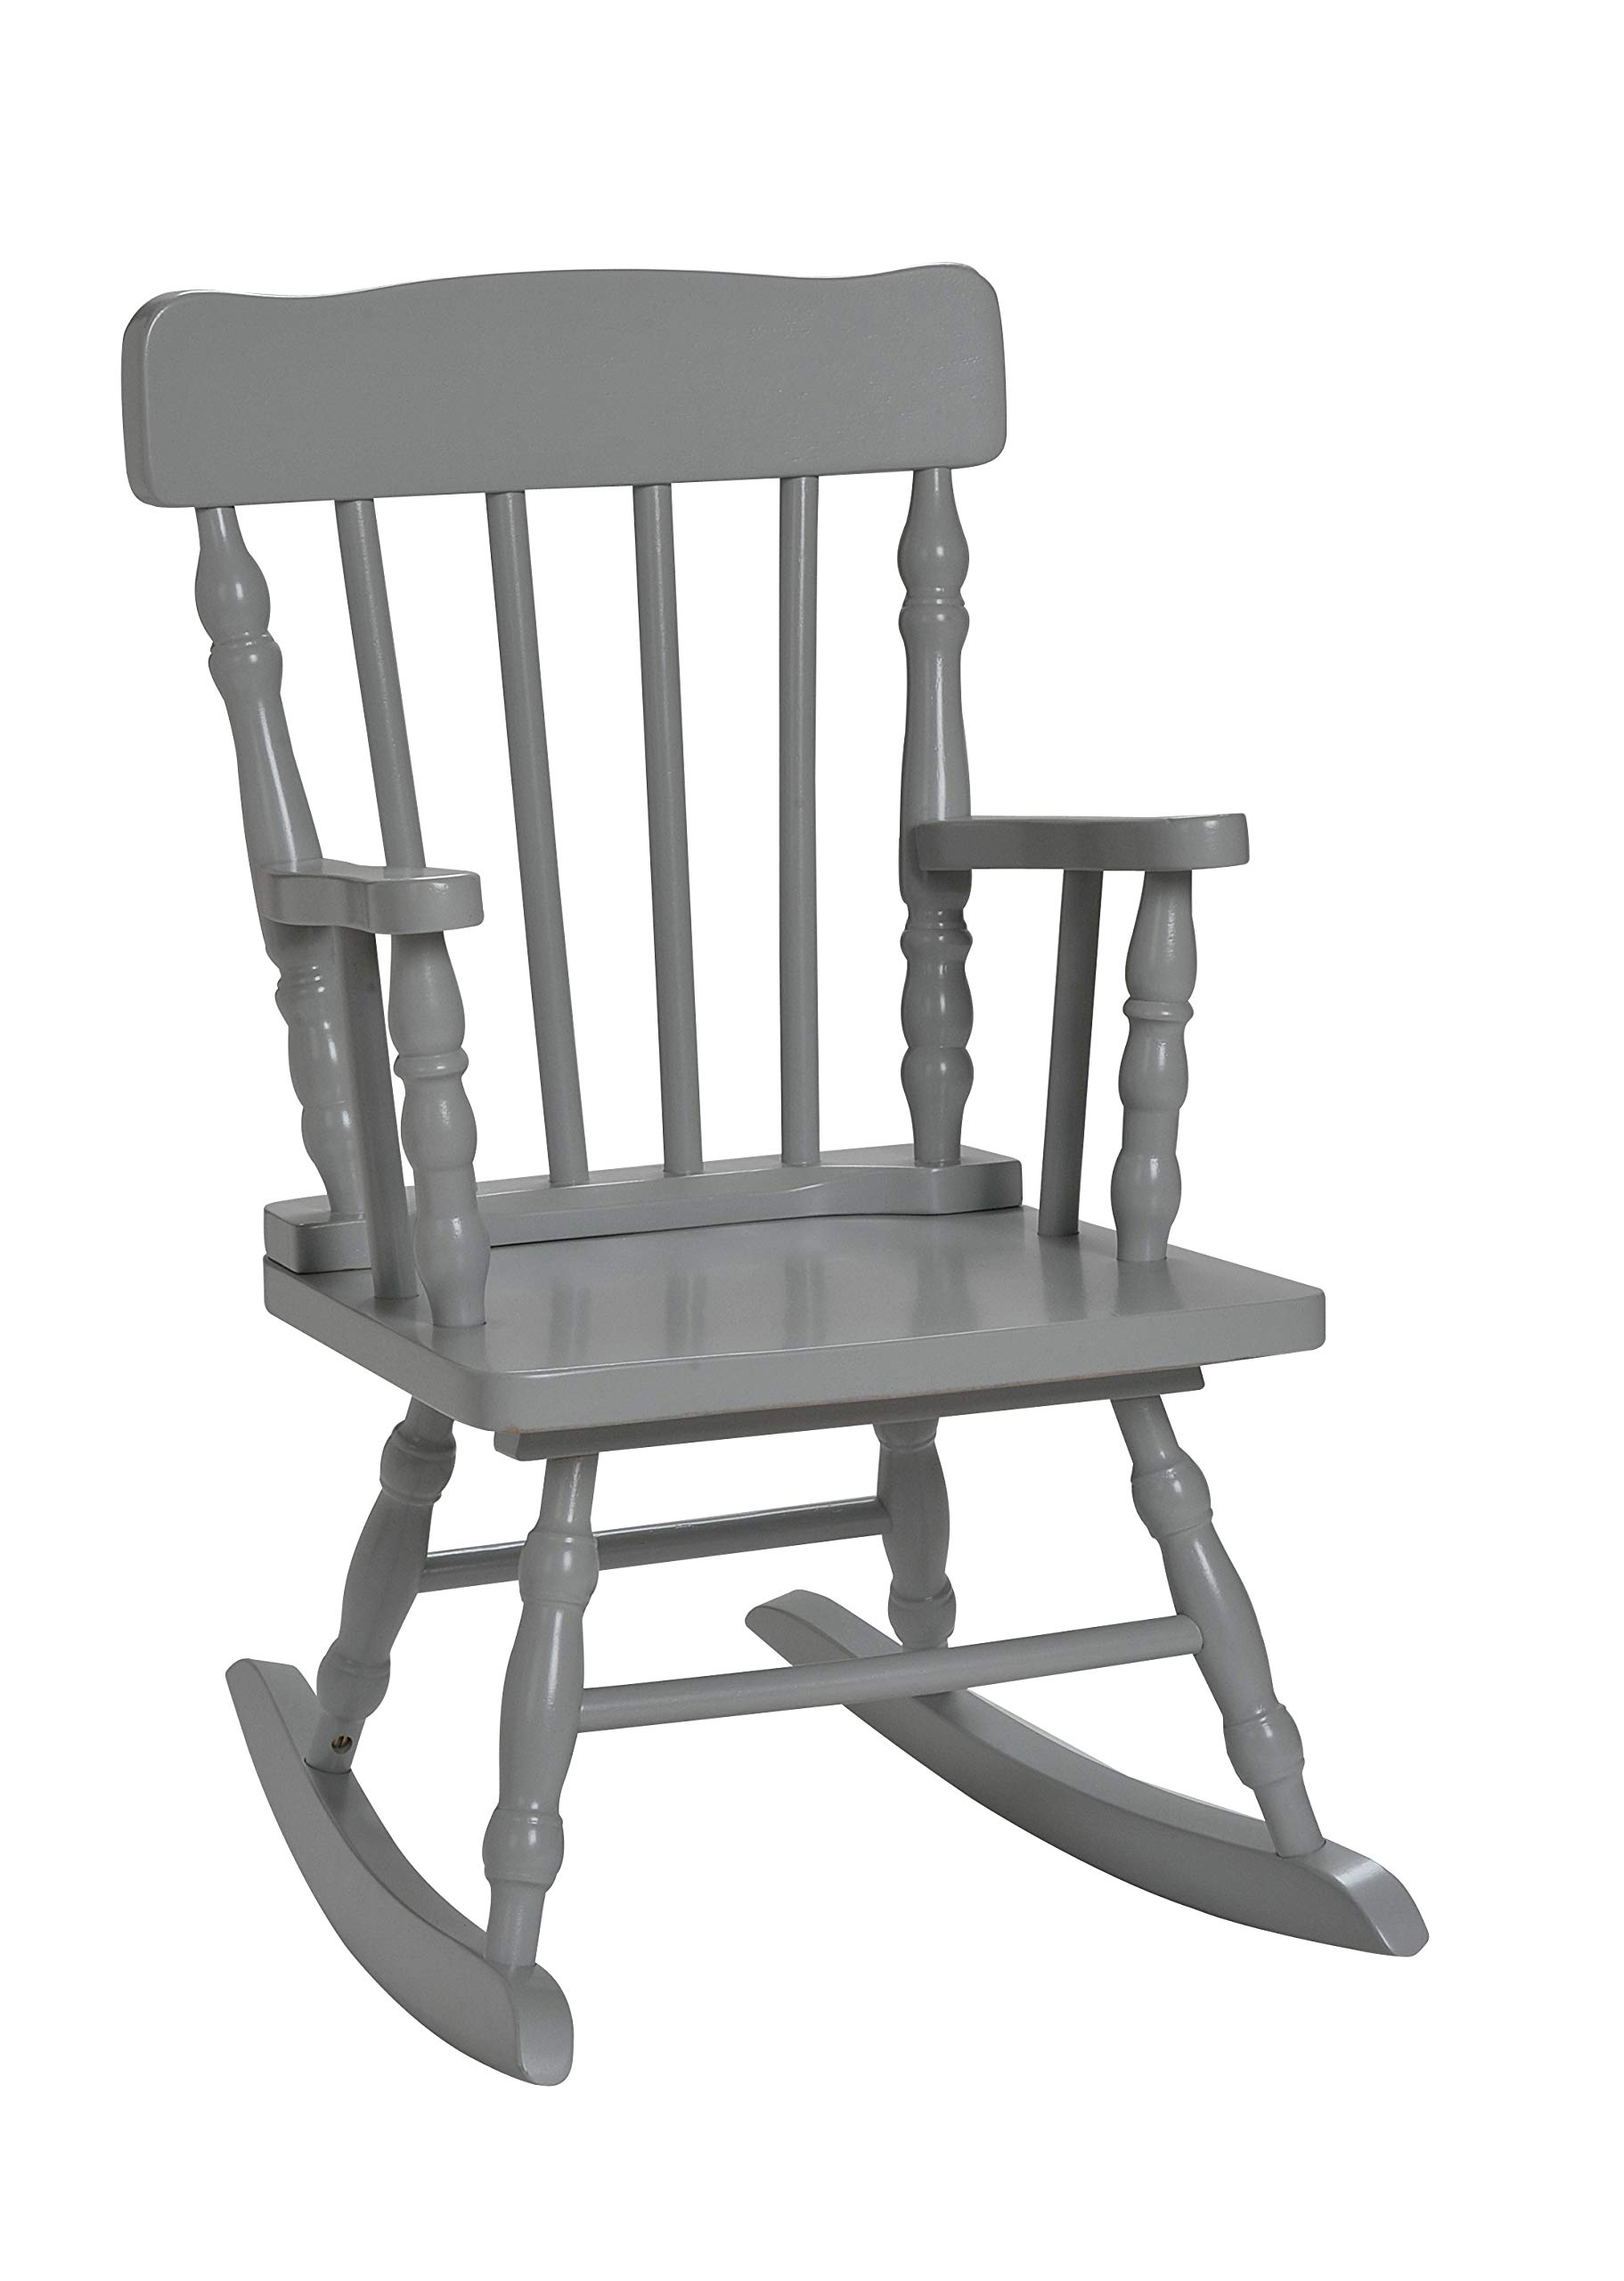 Gift Mark Child's Spindle Rocking Chair, Grey by Gift Mark